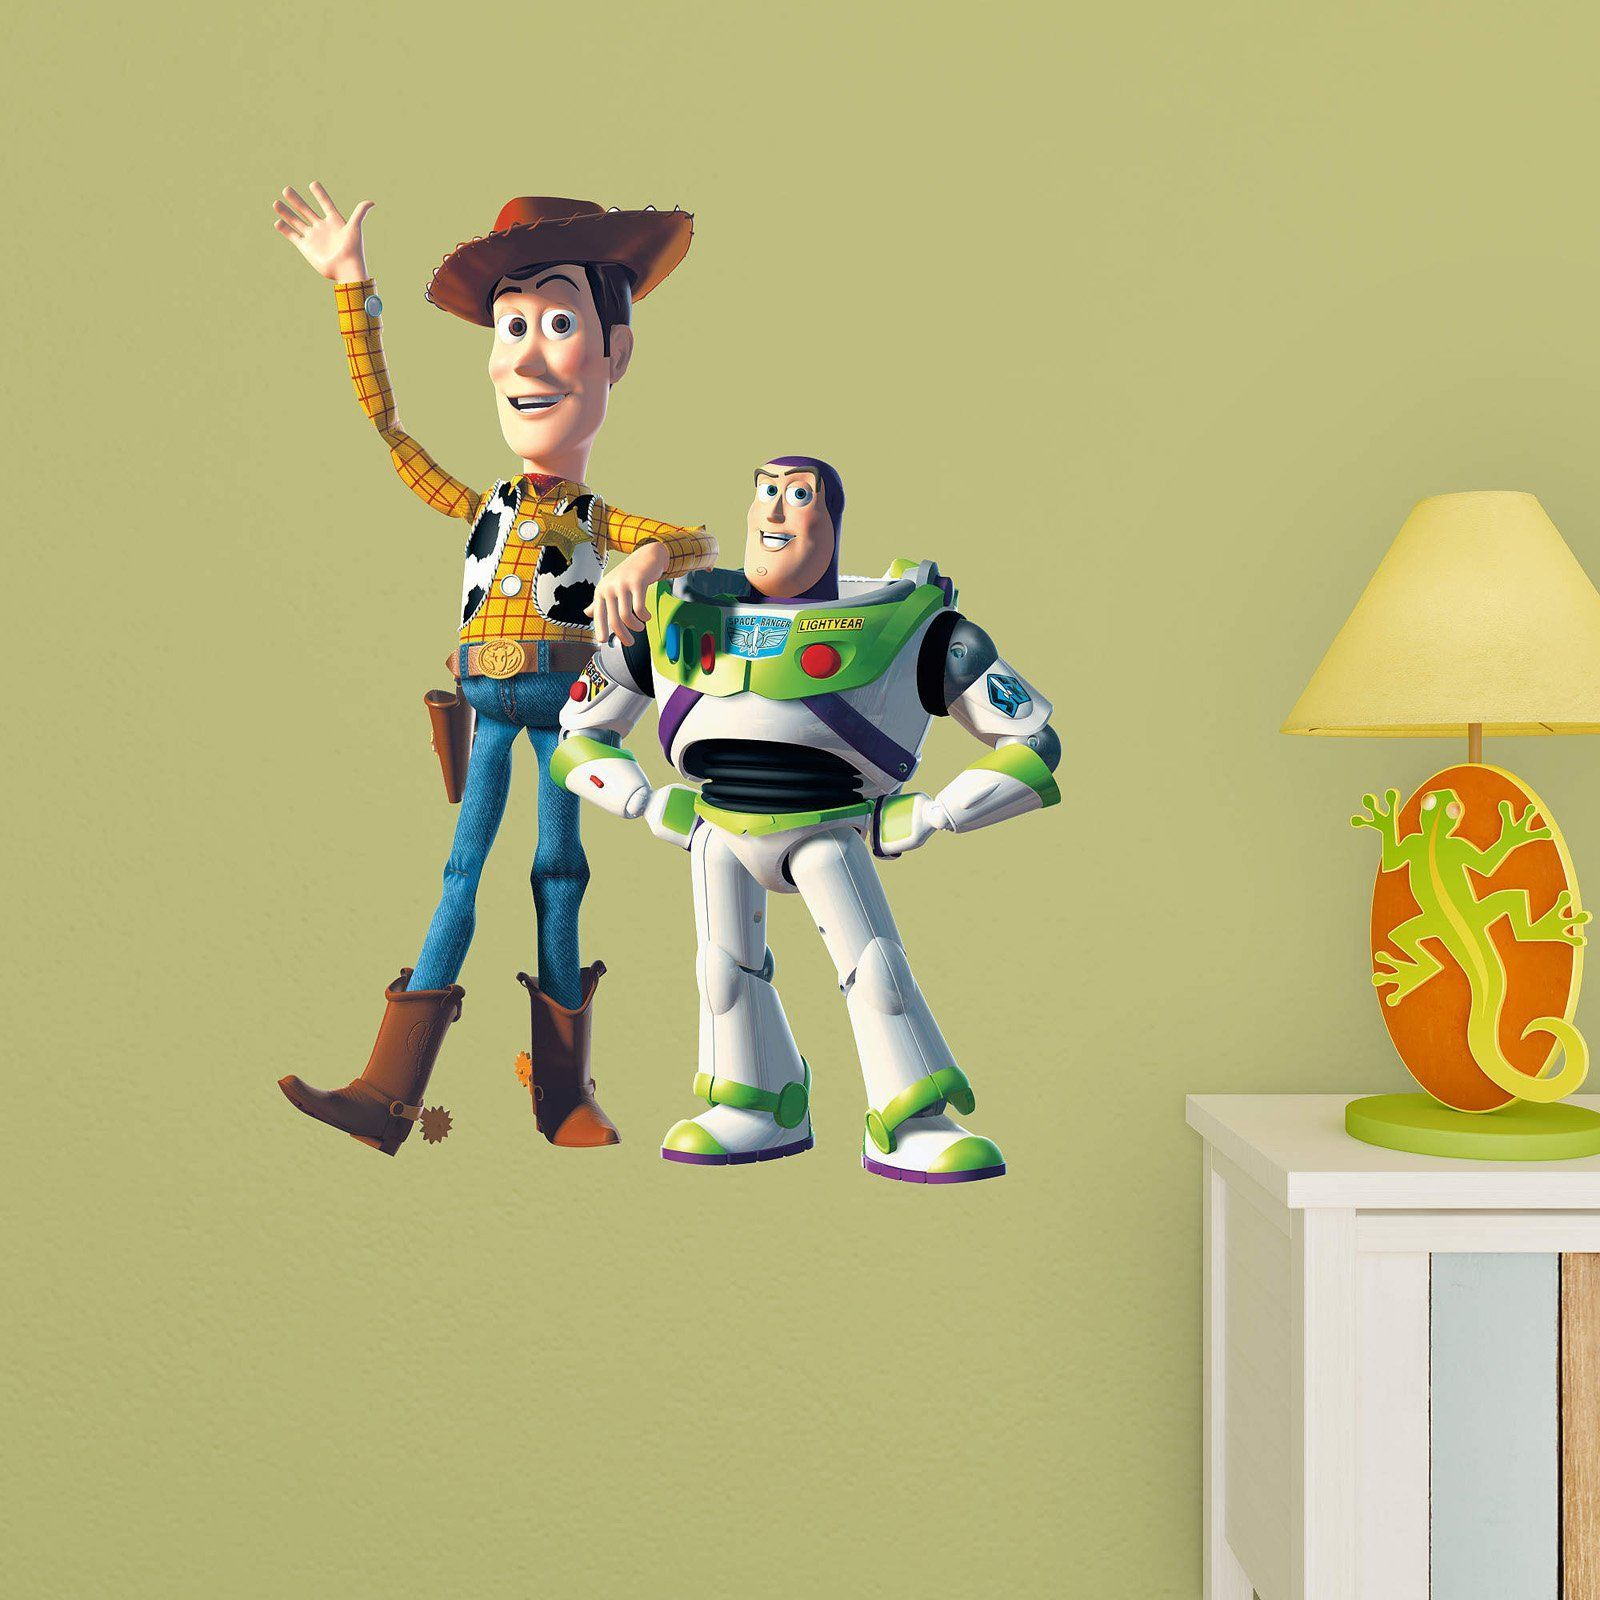 Fathead Toy Story Woody and Buzz Junior Wall Decal - 15-15991 ...